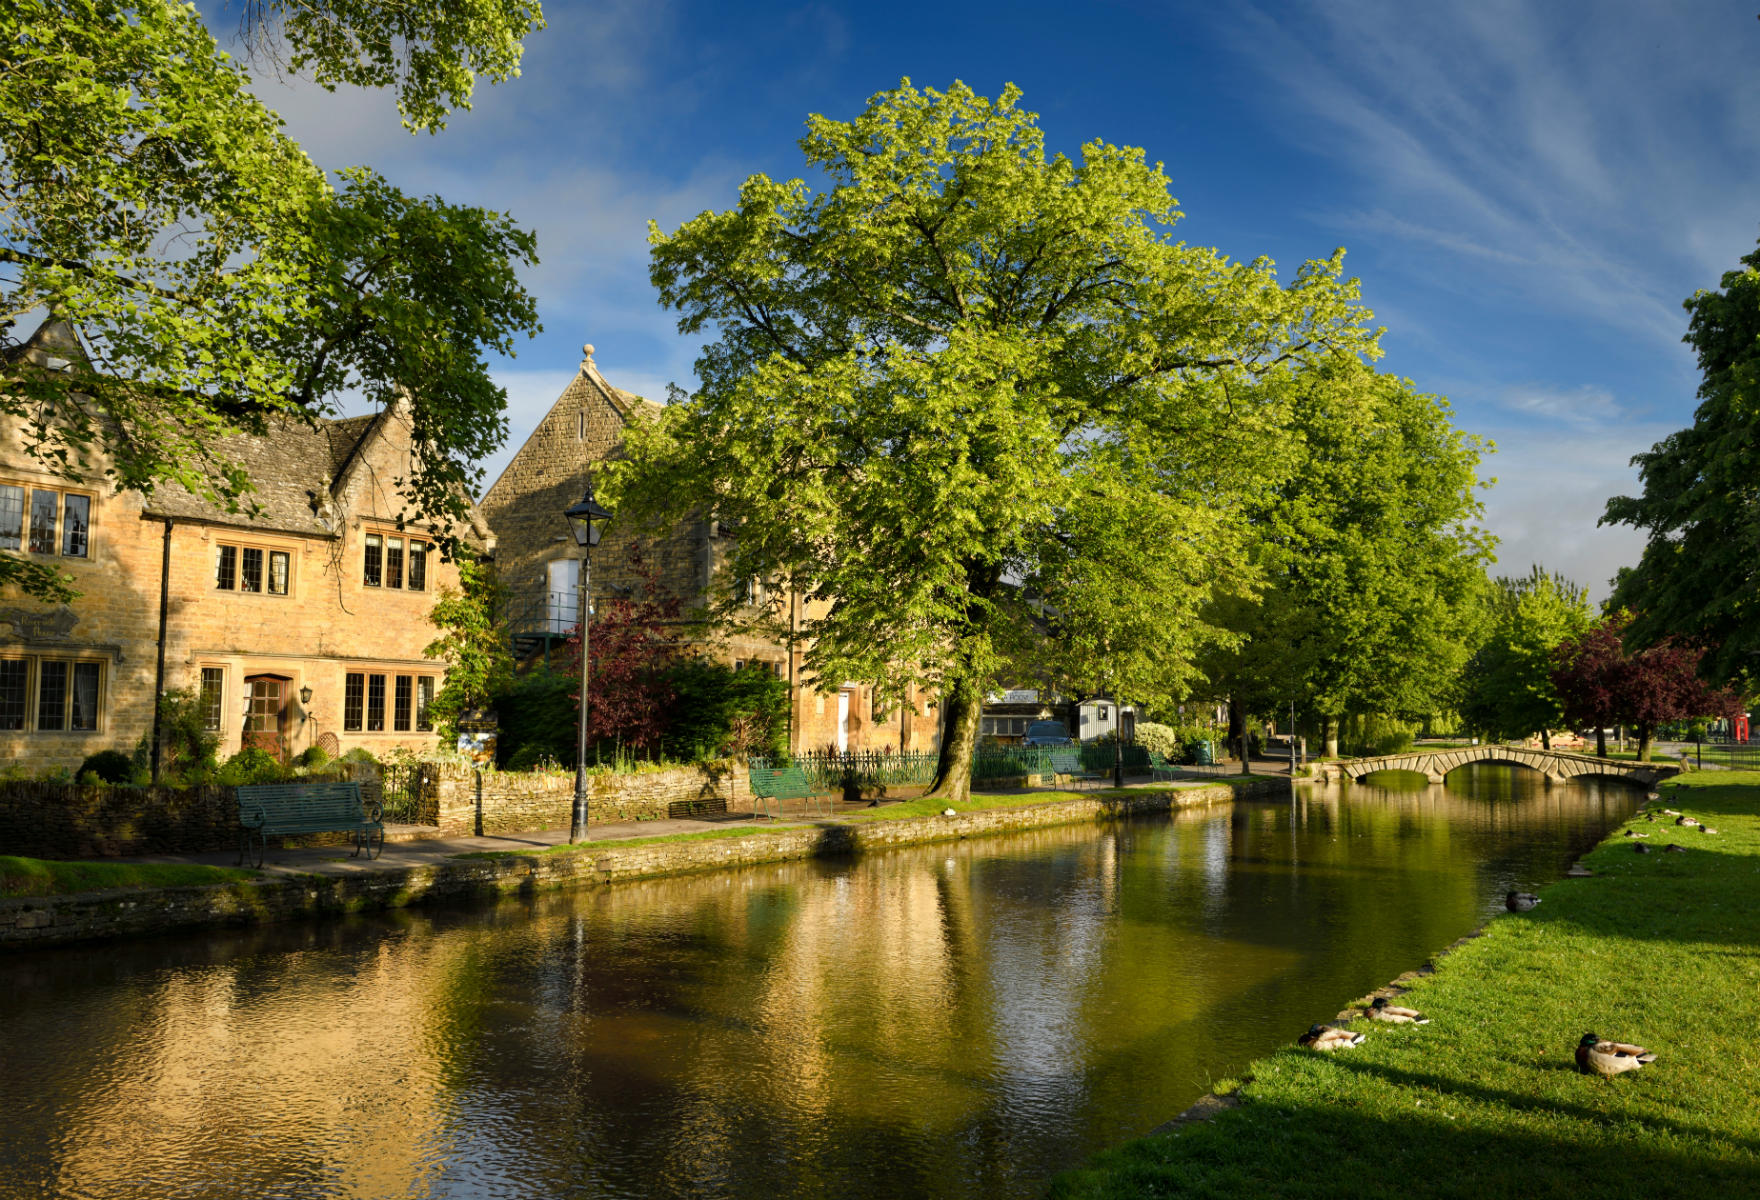 Bourton on the Water (credit: Reimar/Shutterstock)